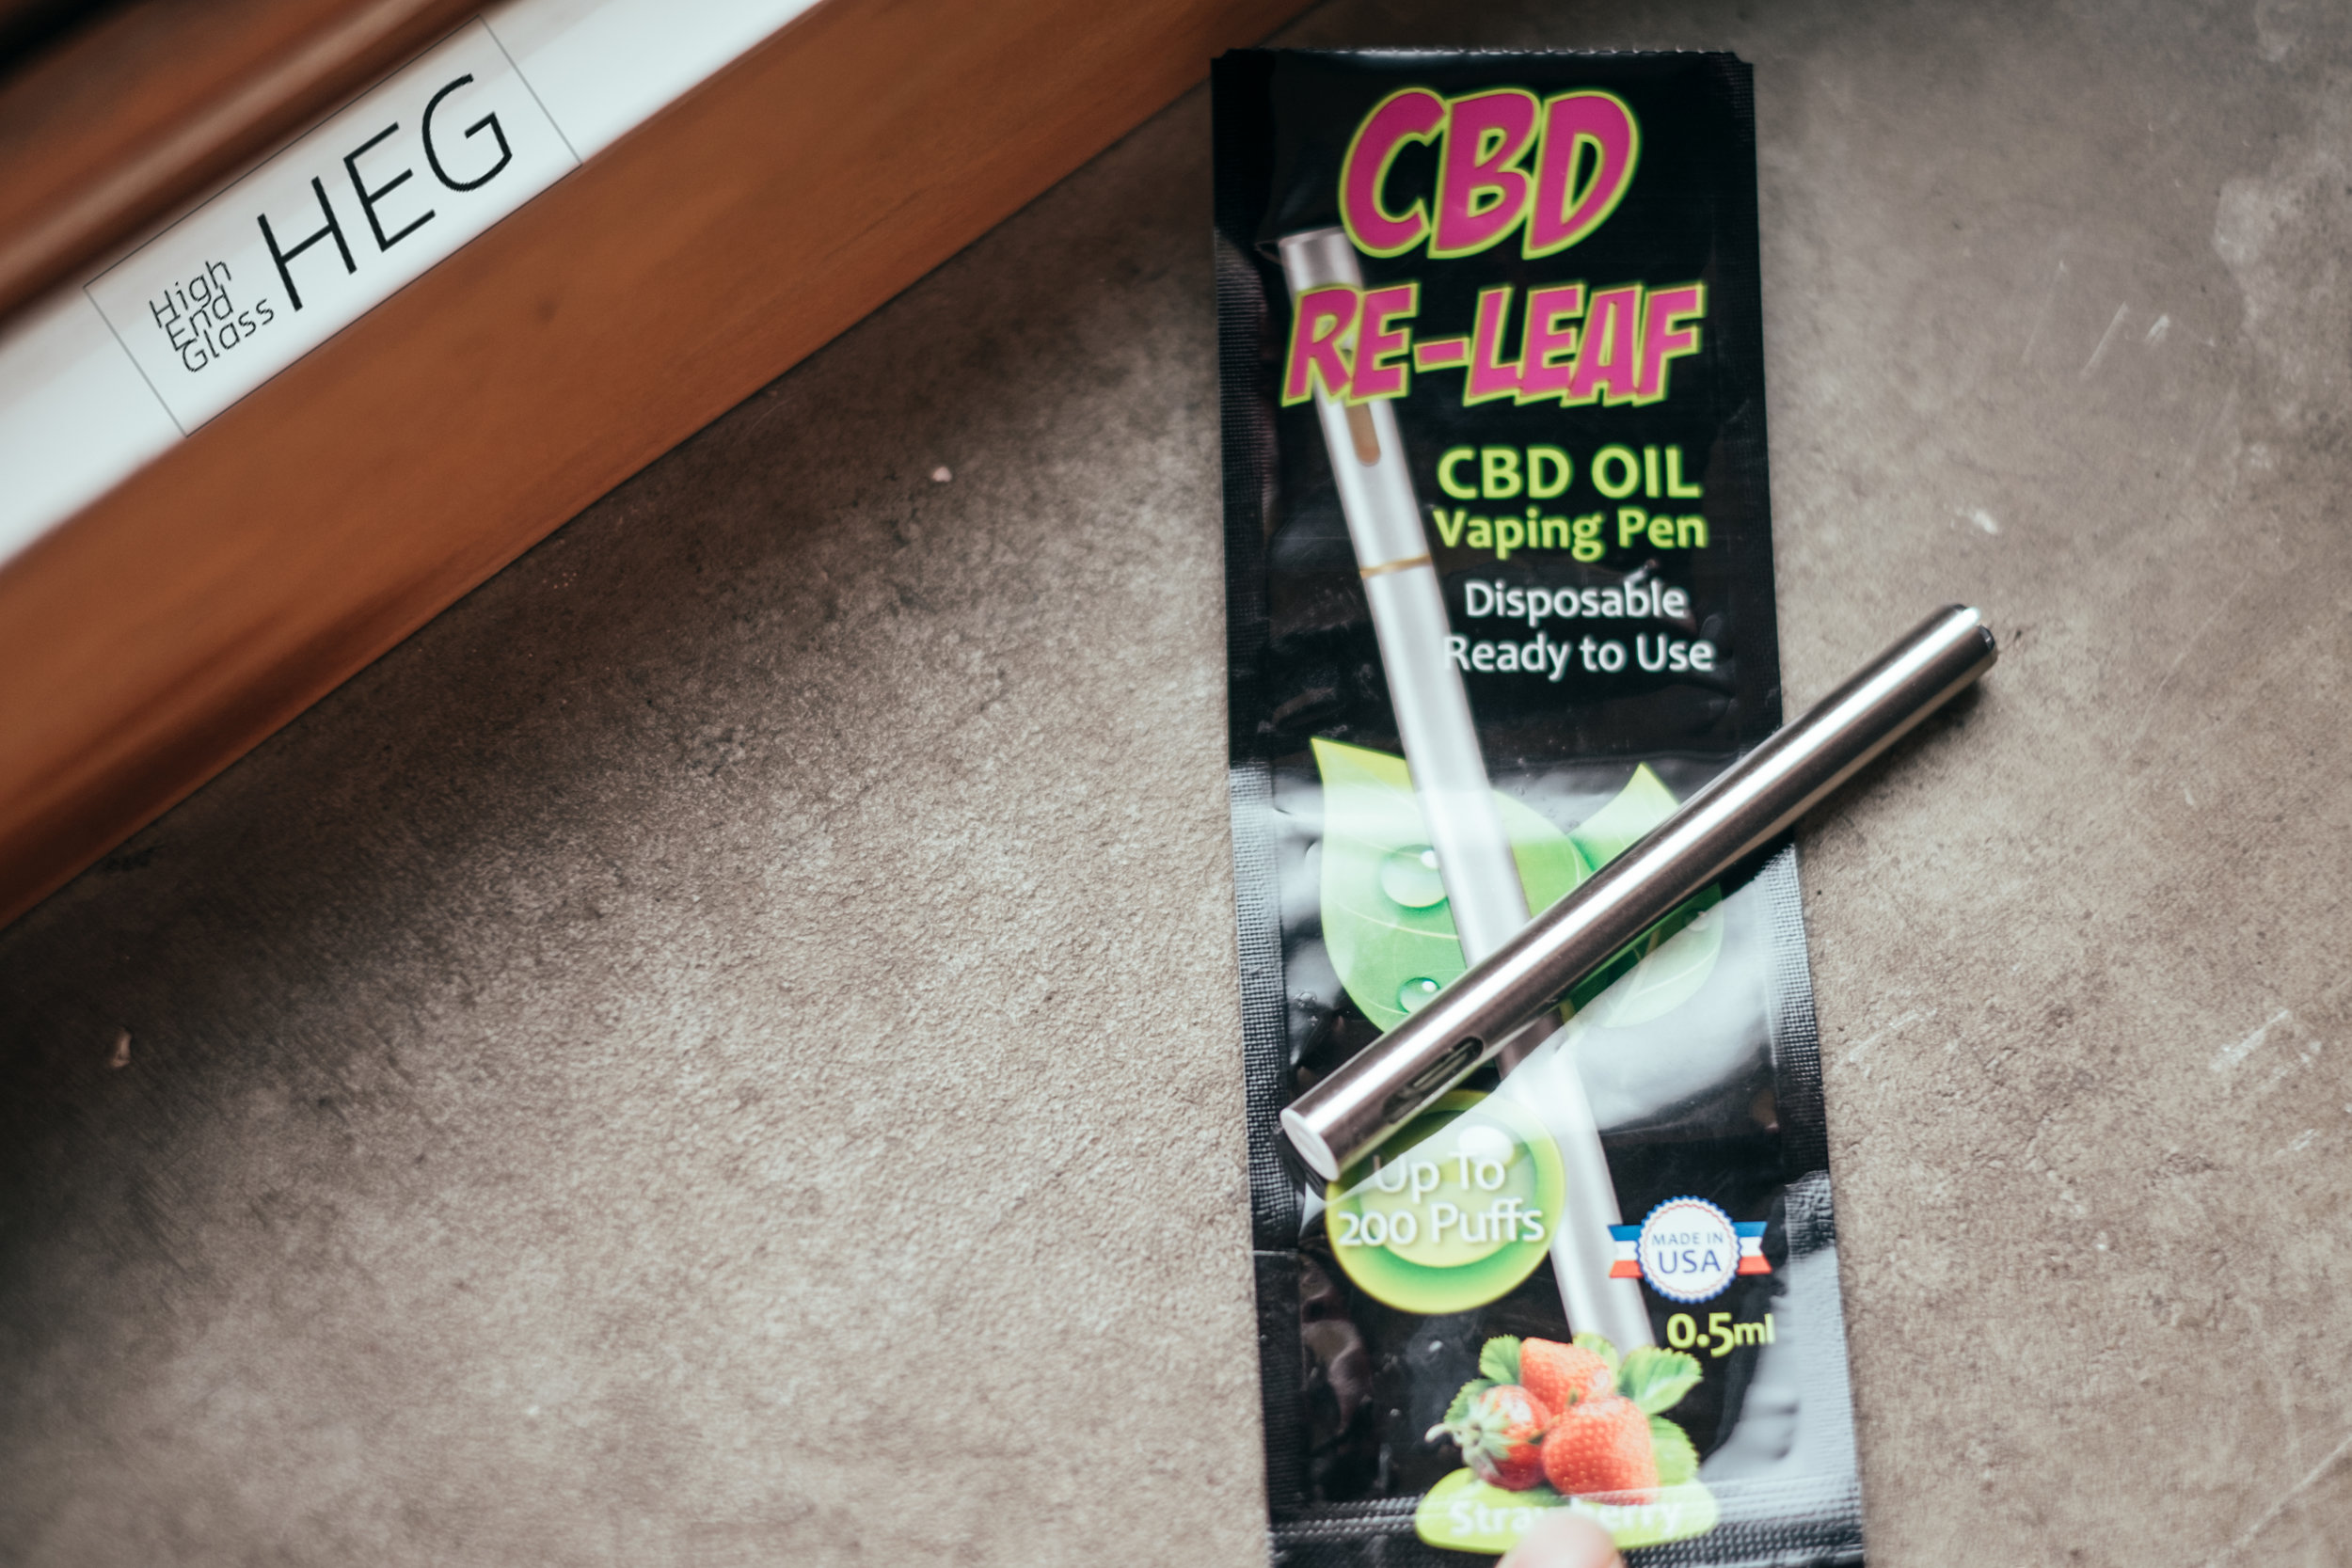 CBD RE-LEAF pre-filled vape pen